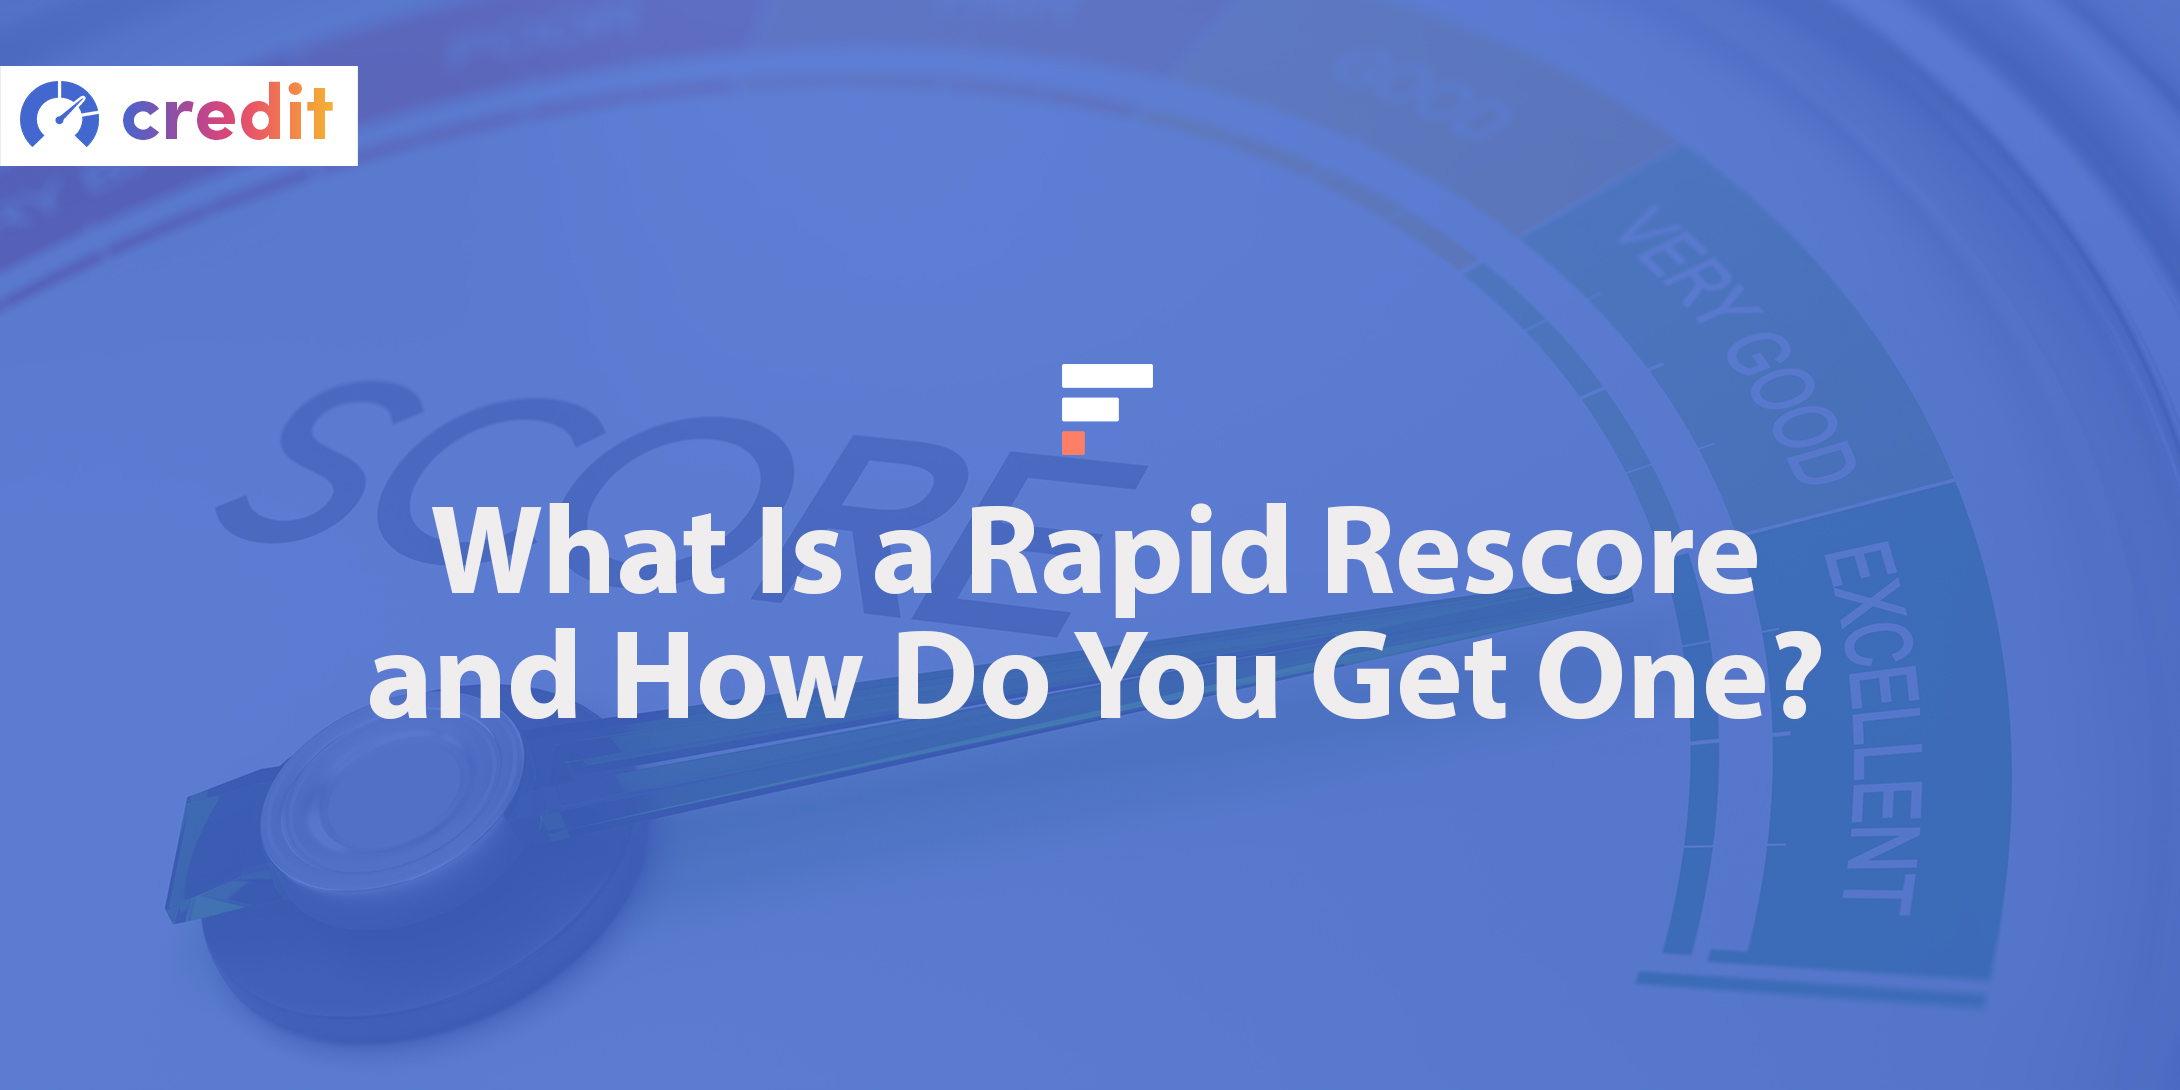 What Is a Rapid Rescore, and How Do You Get One?